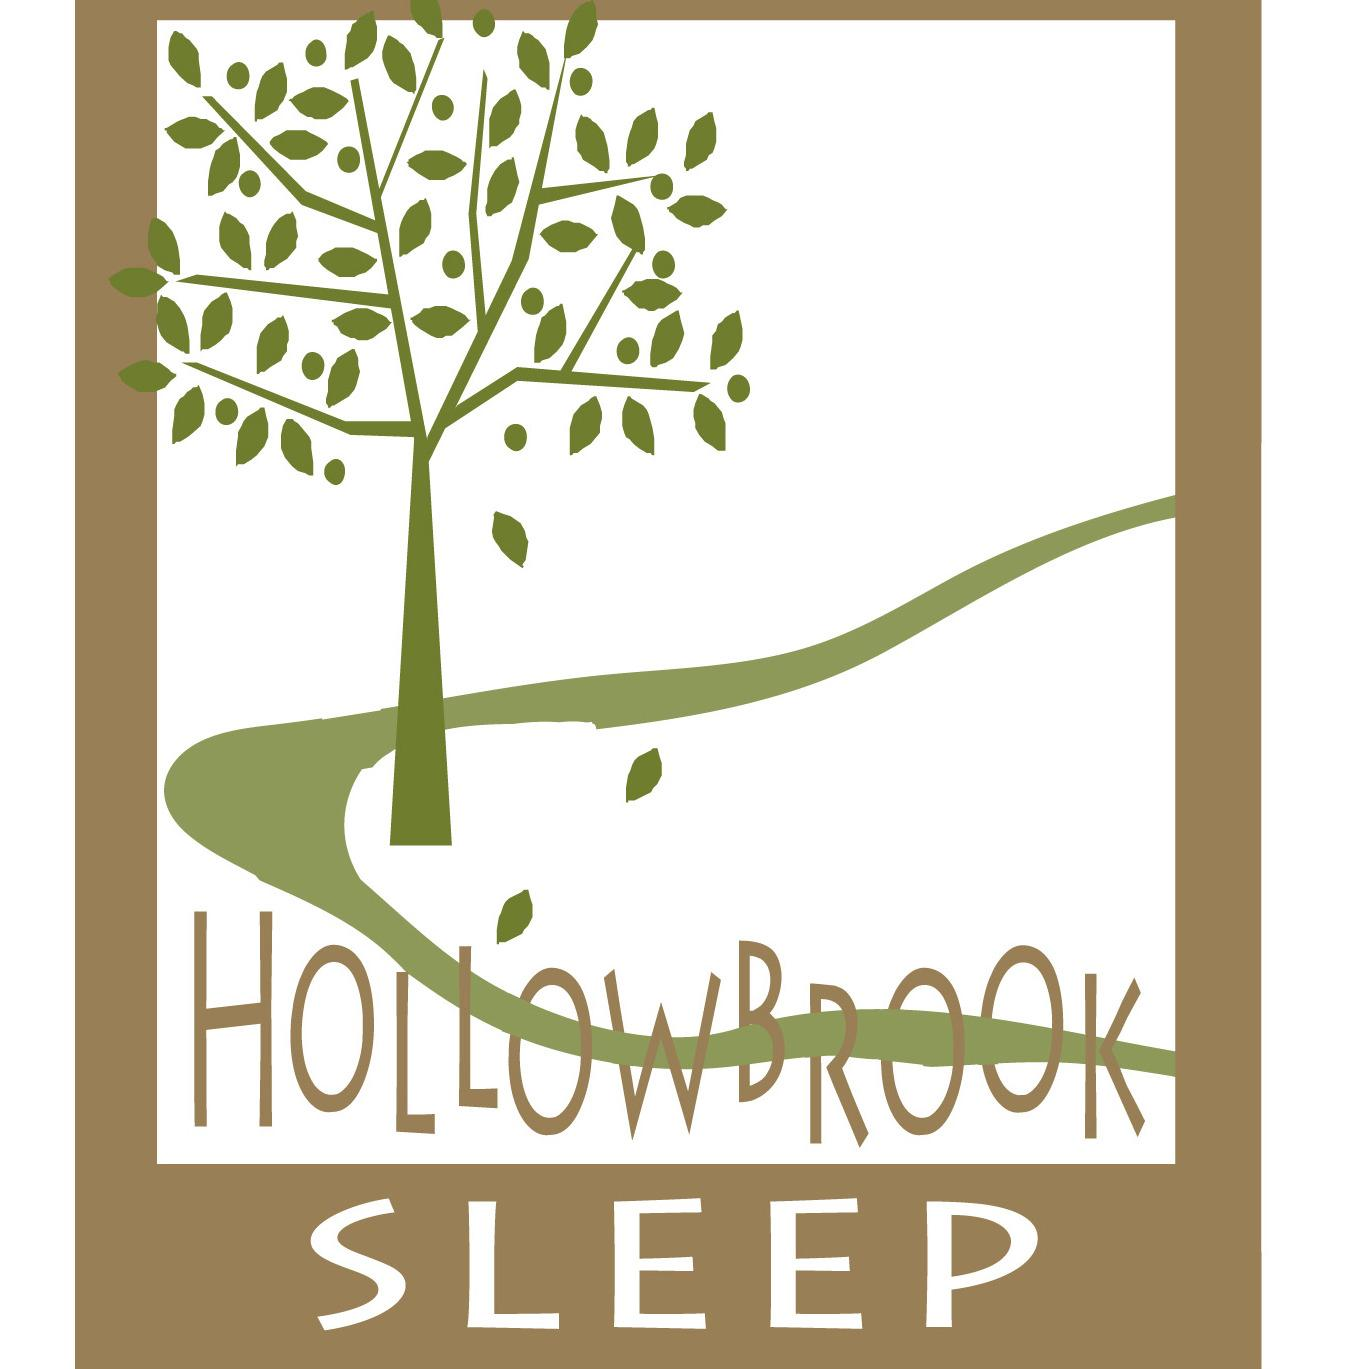 HollowBrook Sleep